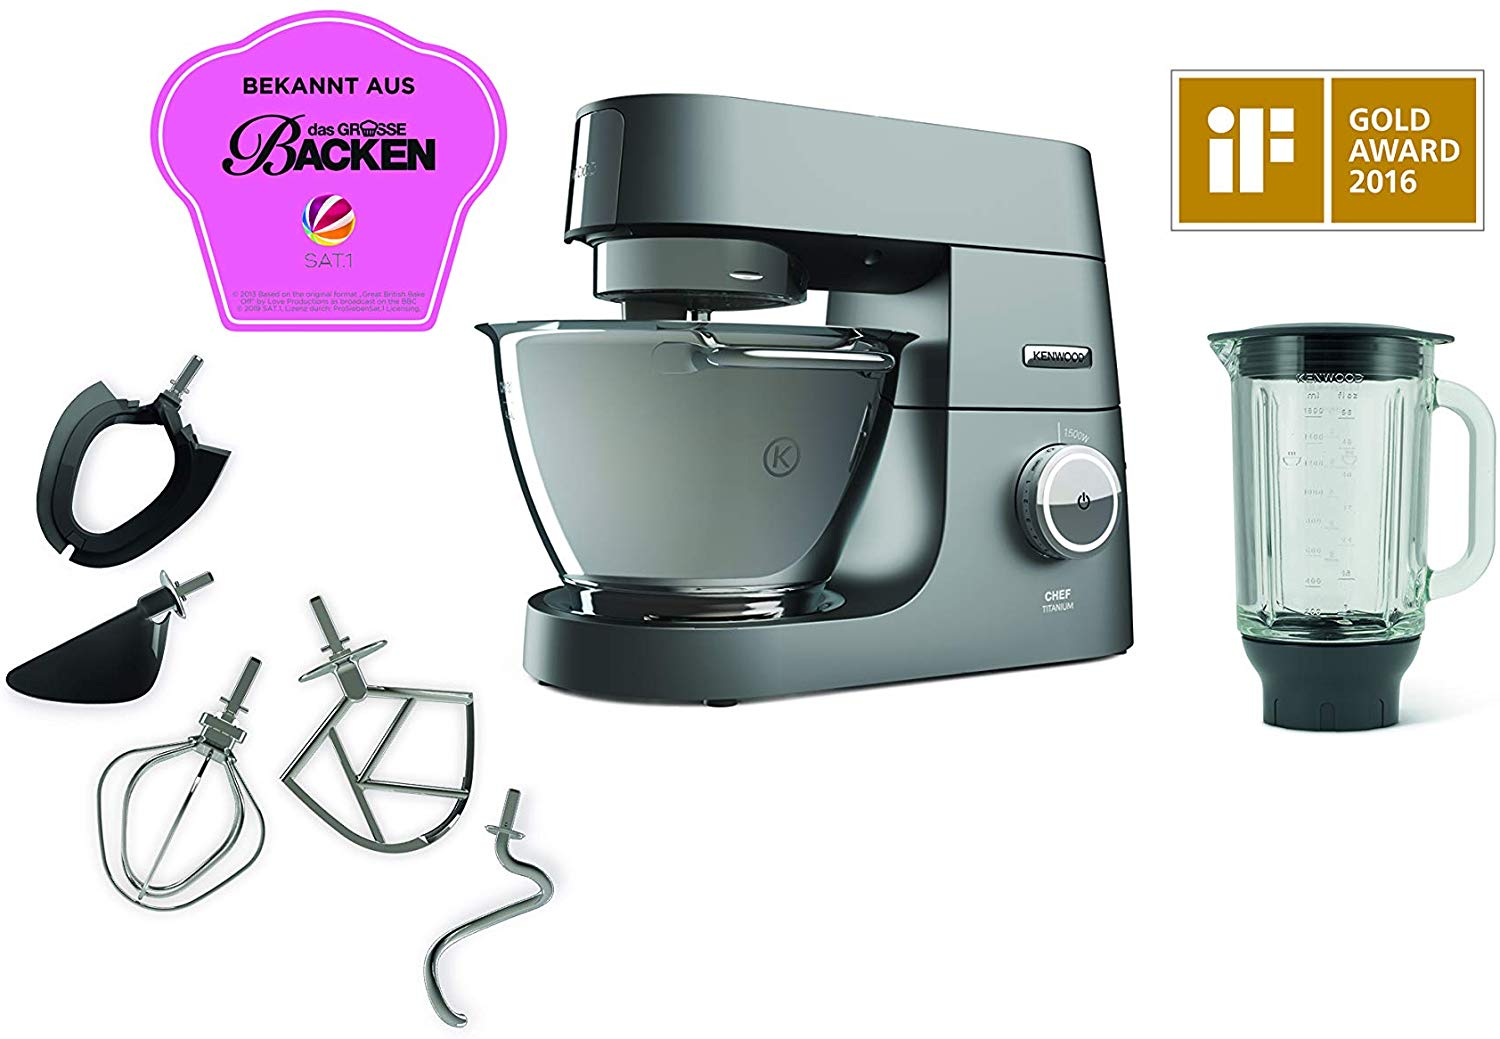 Kenwood Chef Titanium KVC7320S